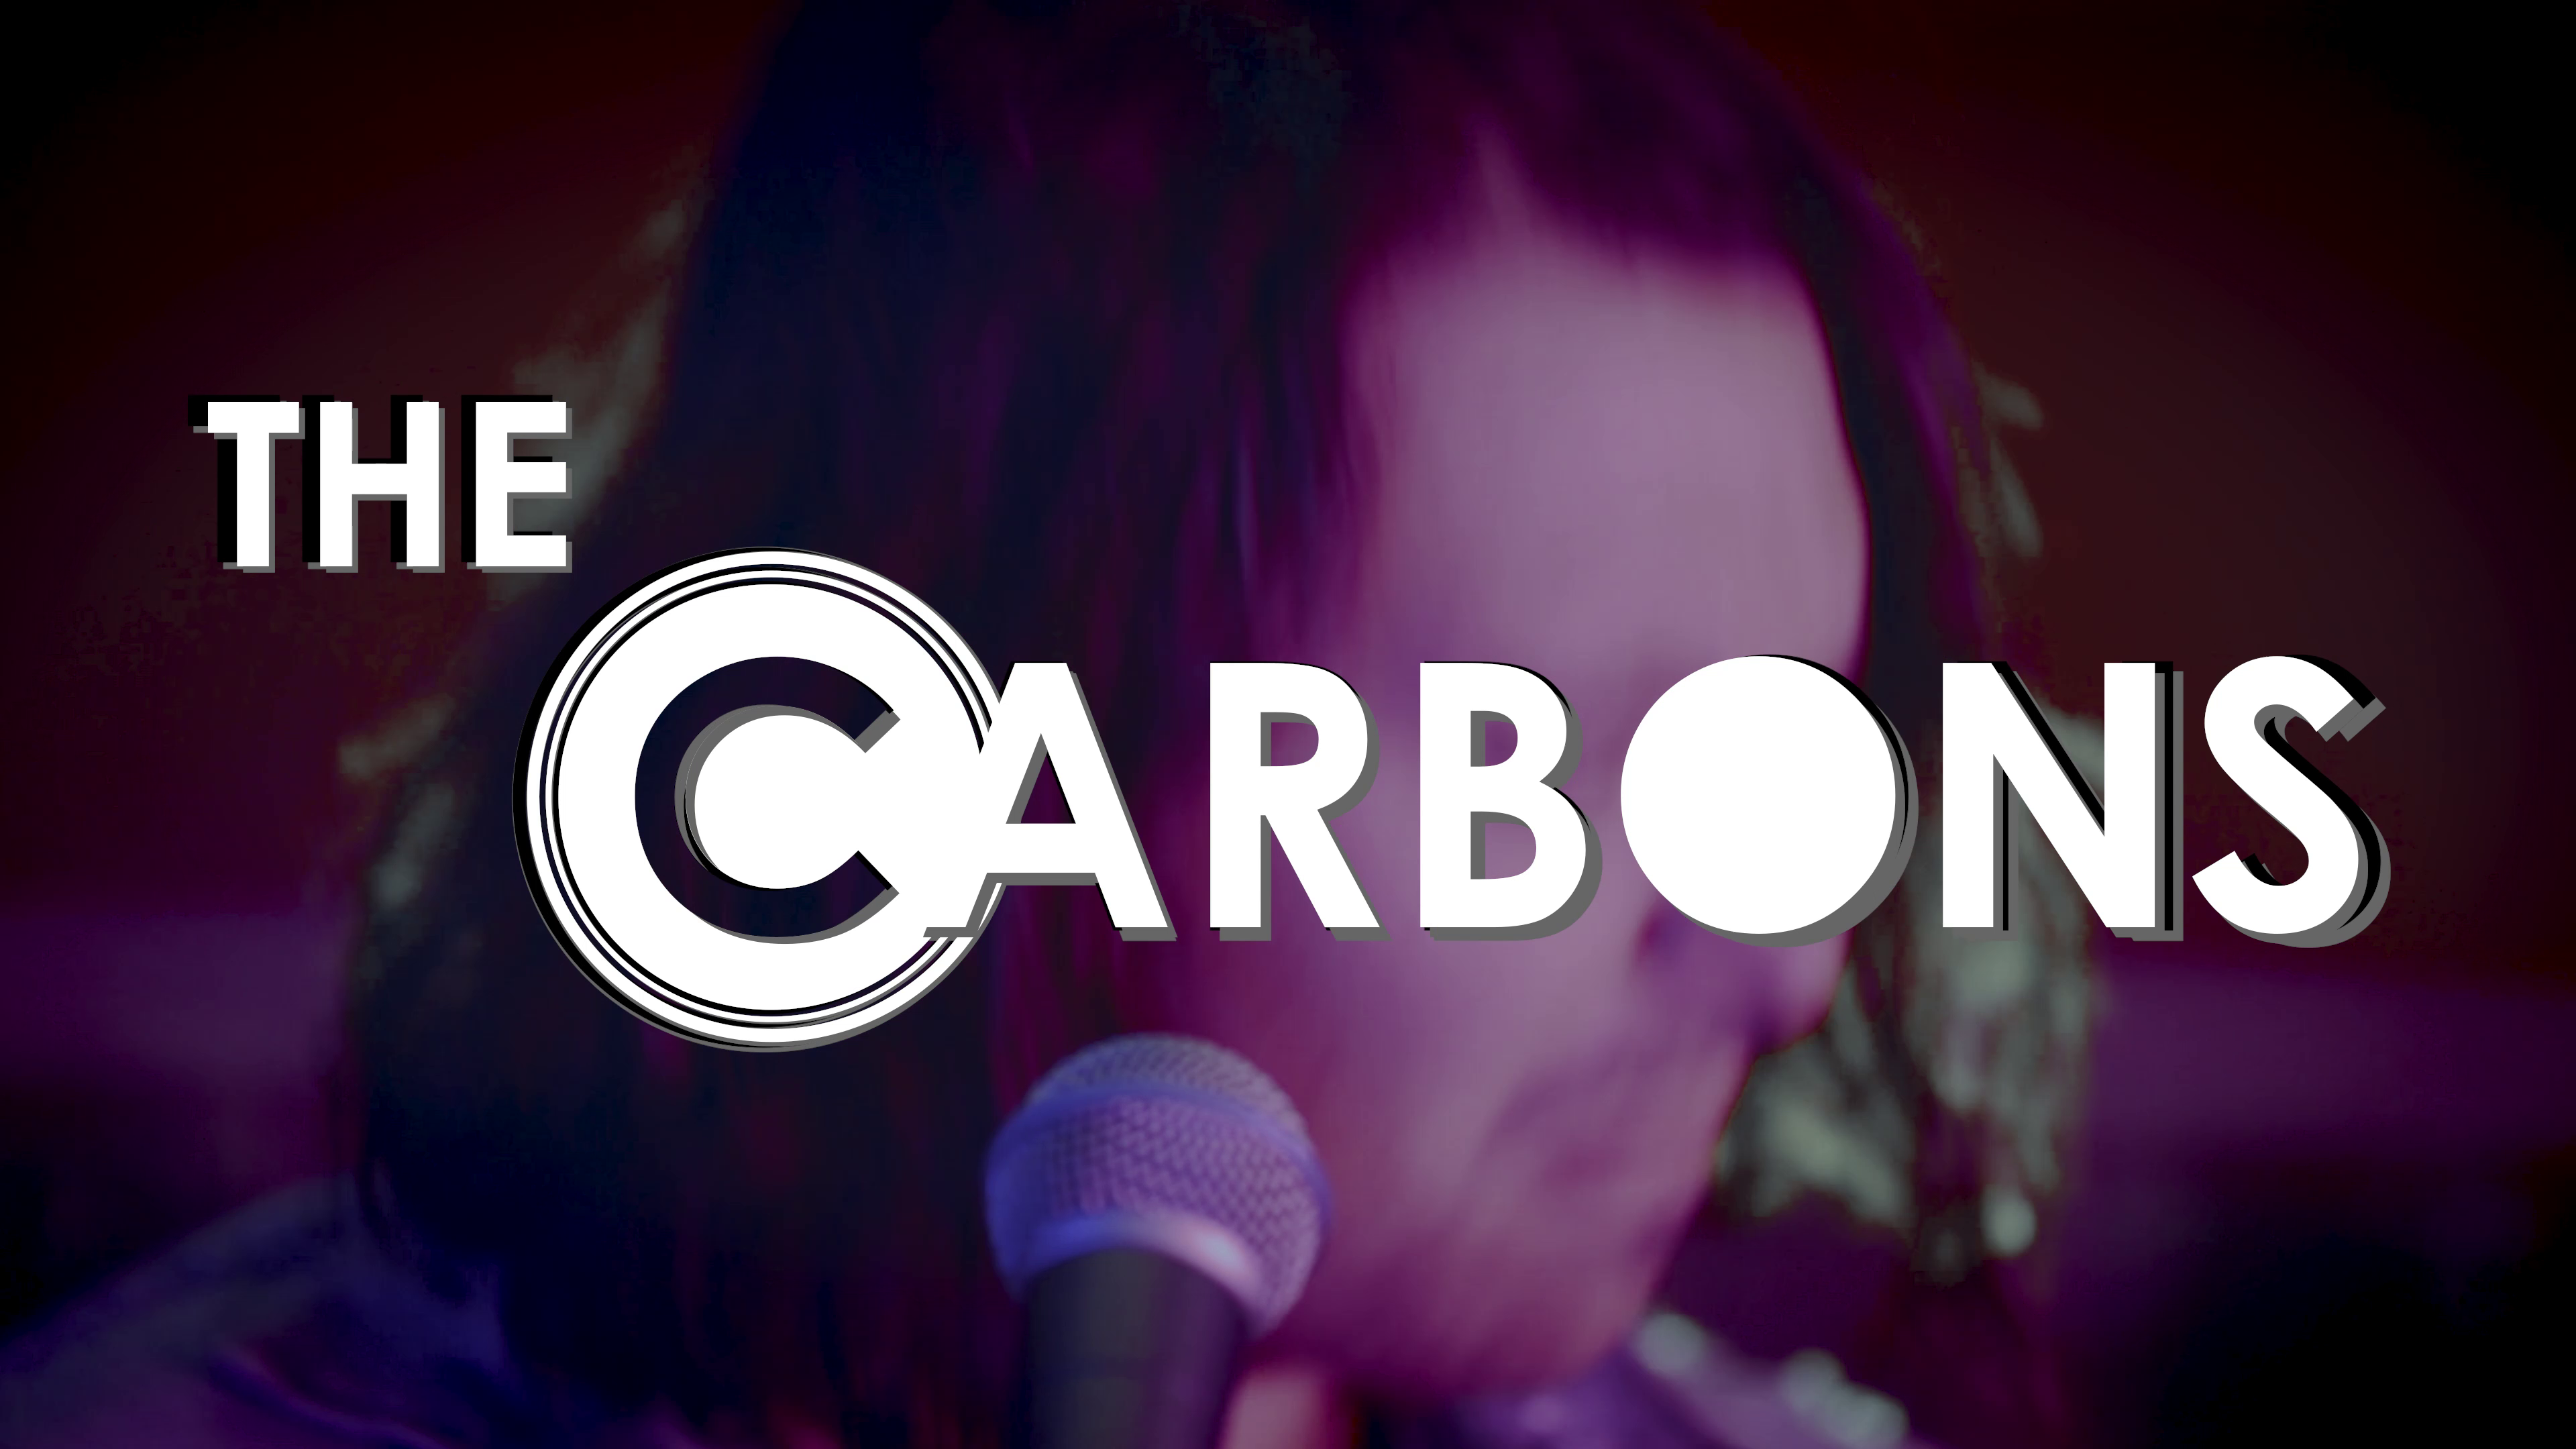 The Carbons Poster